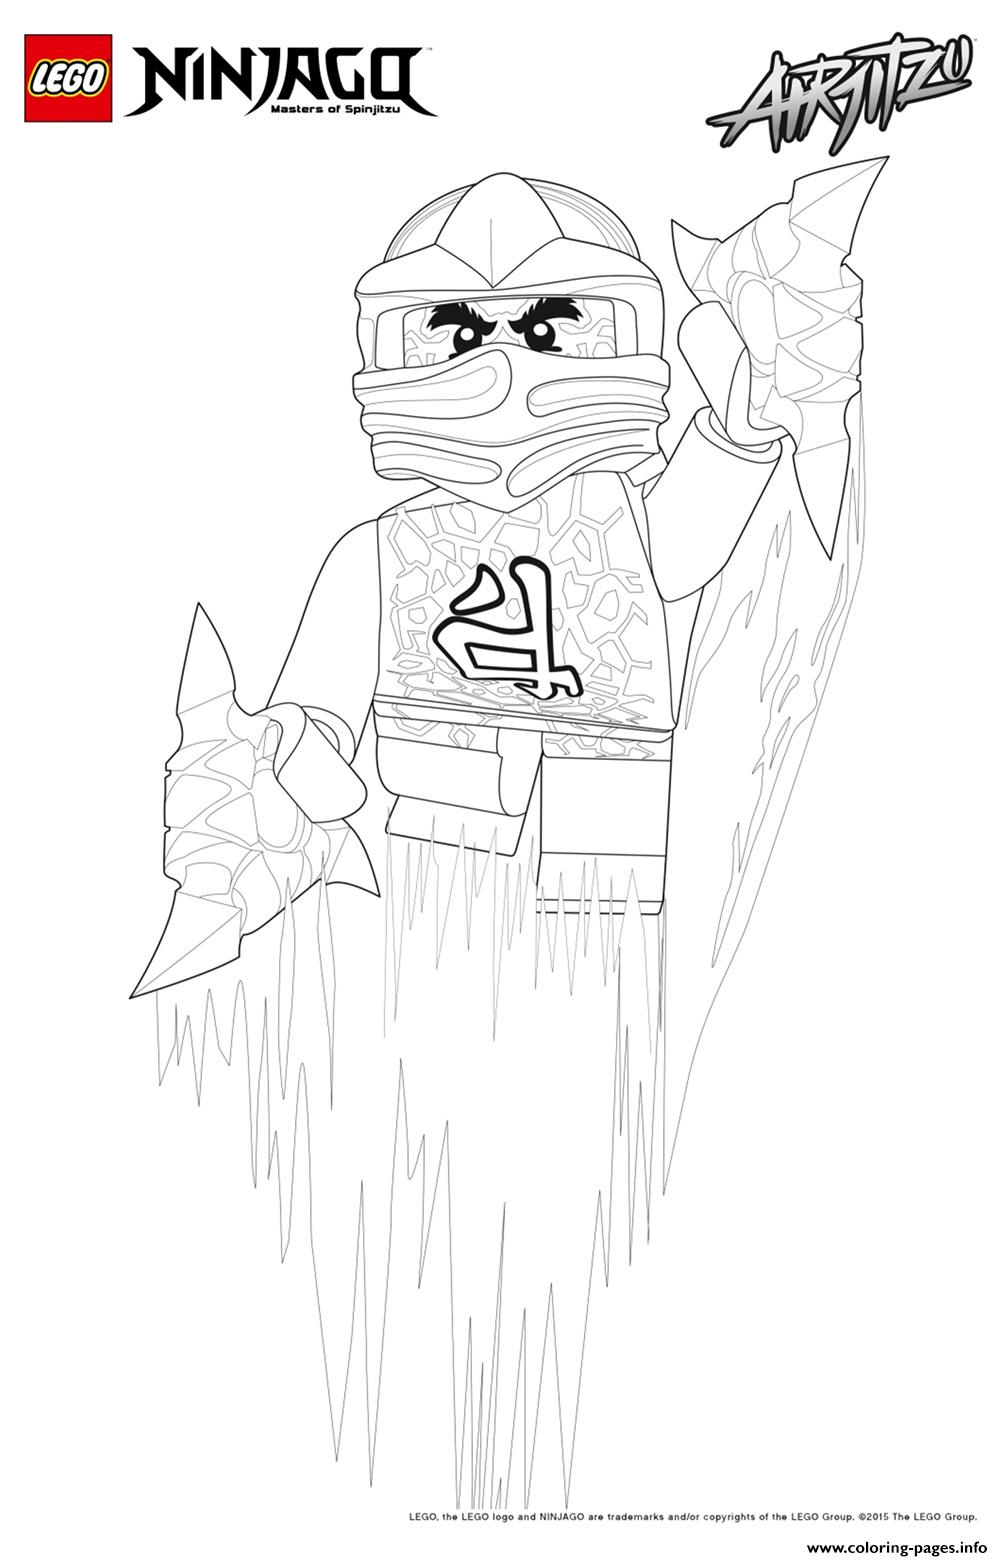 Kai Lego Ninjago Coloring Pages